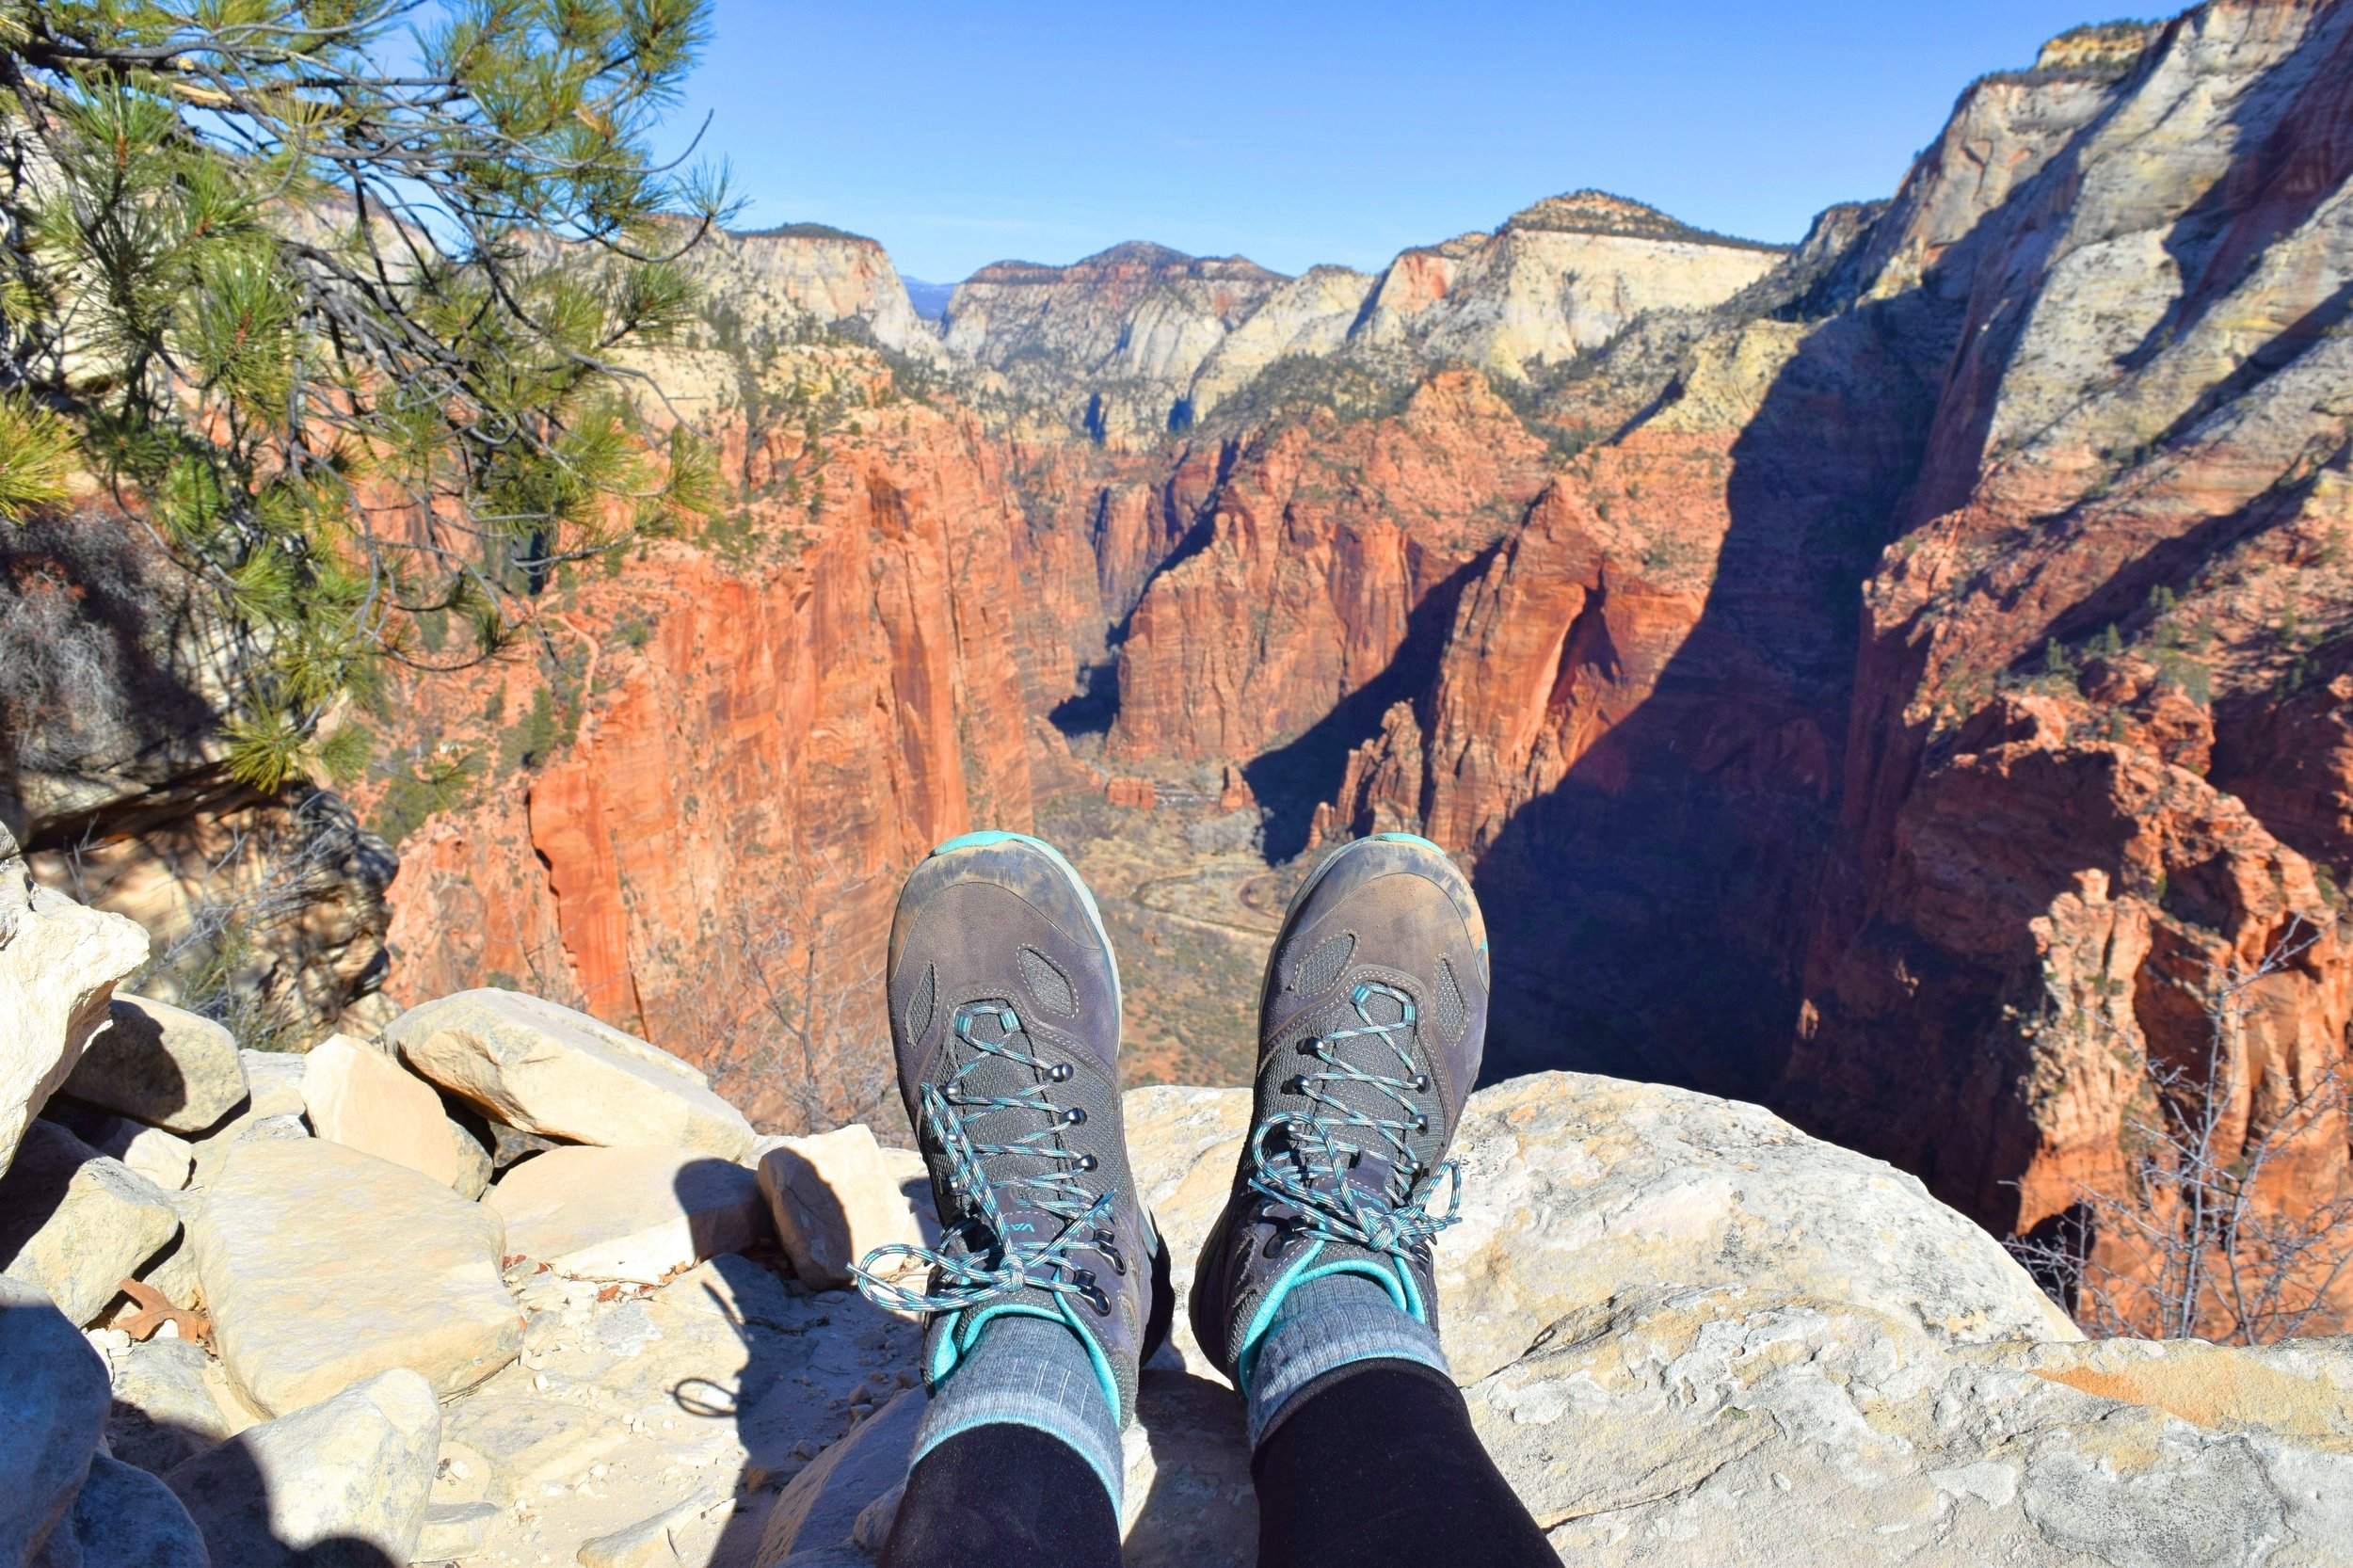 The view from Angels Landing looking north